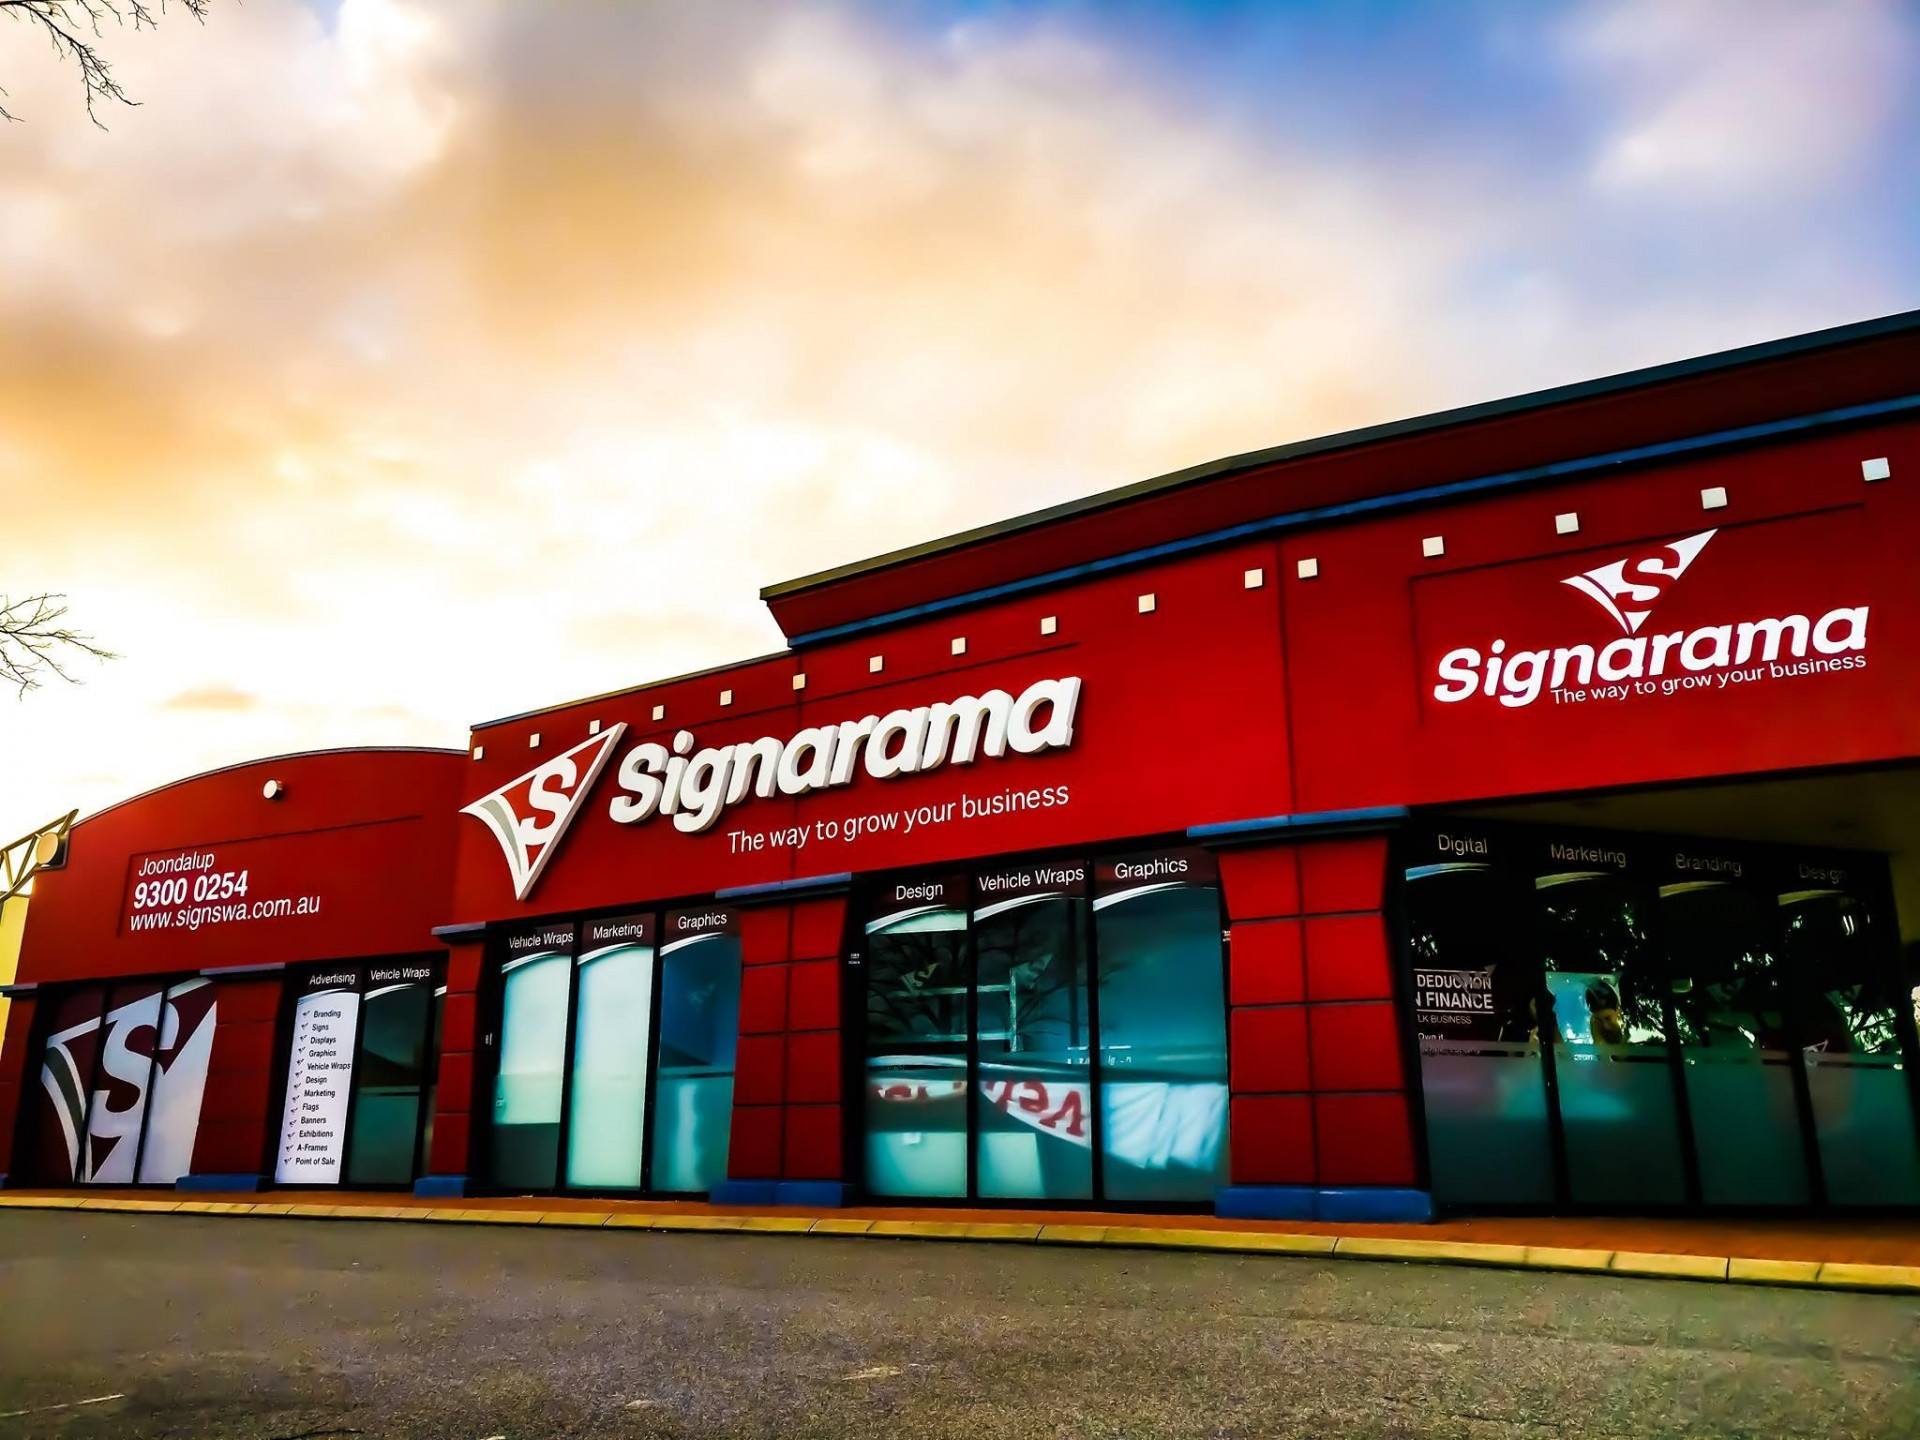 NEW Signarama Franchise Opportunity in Brisbane area